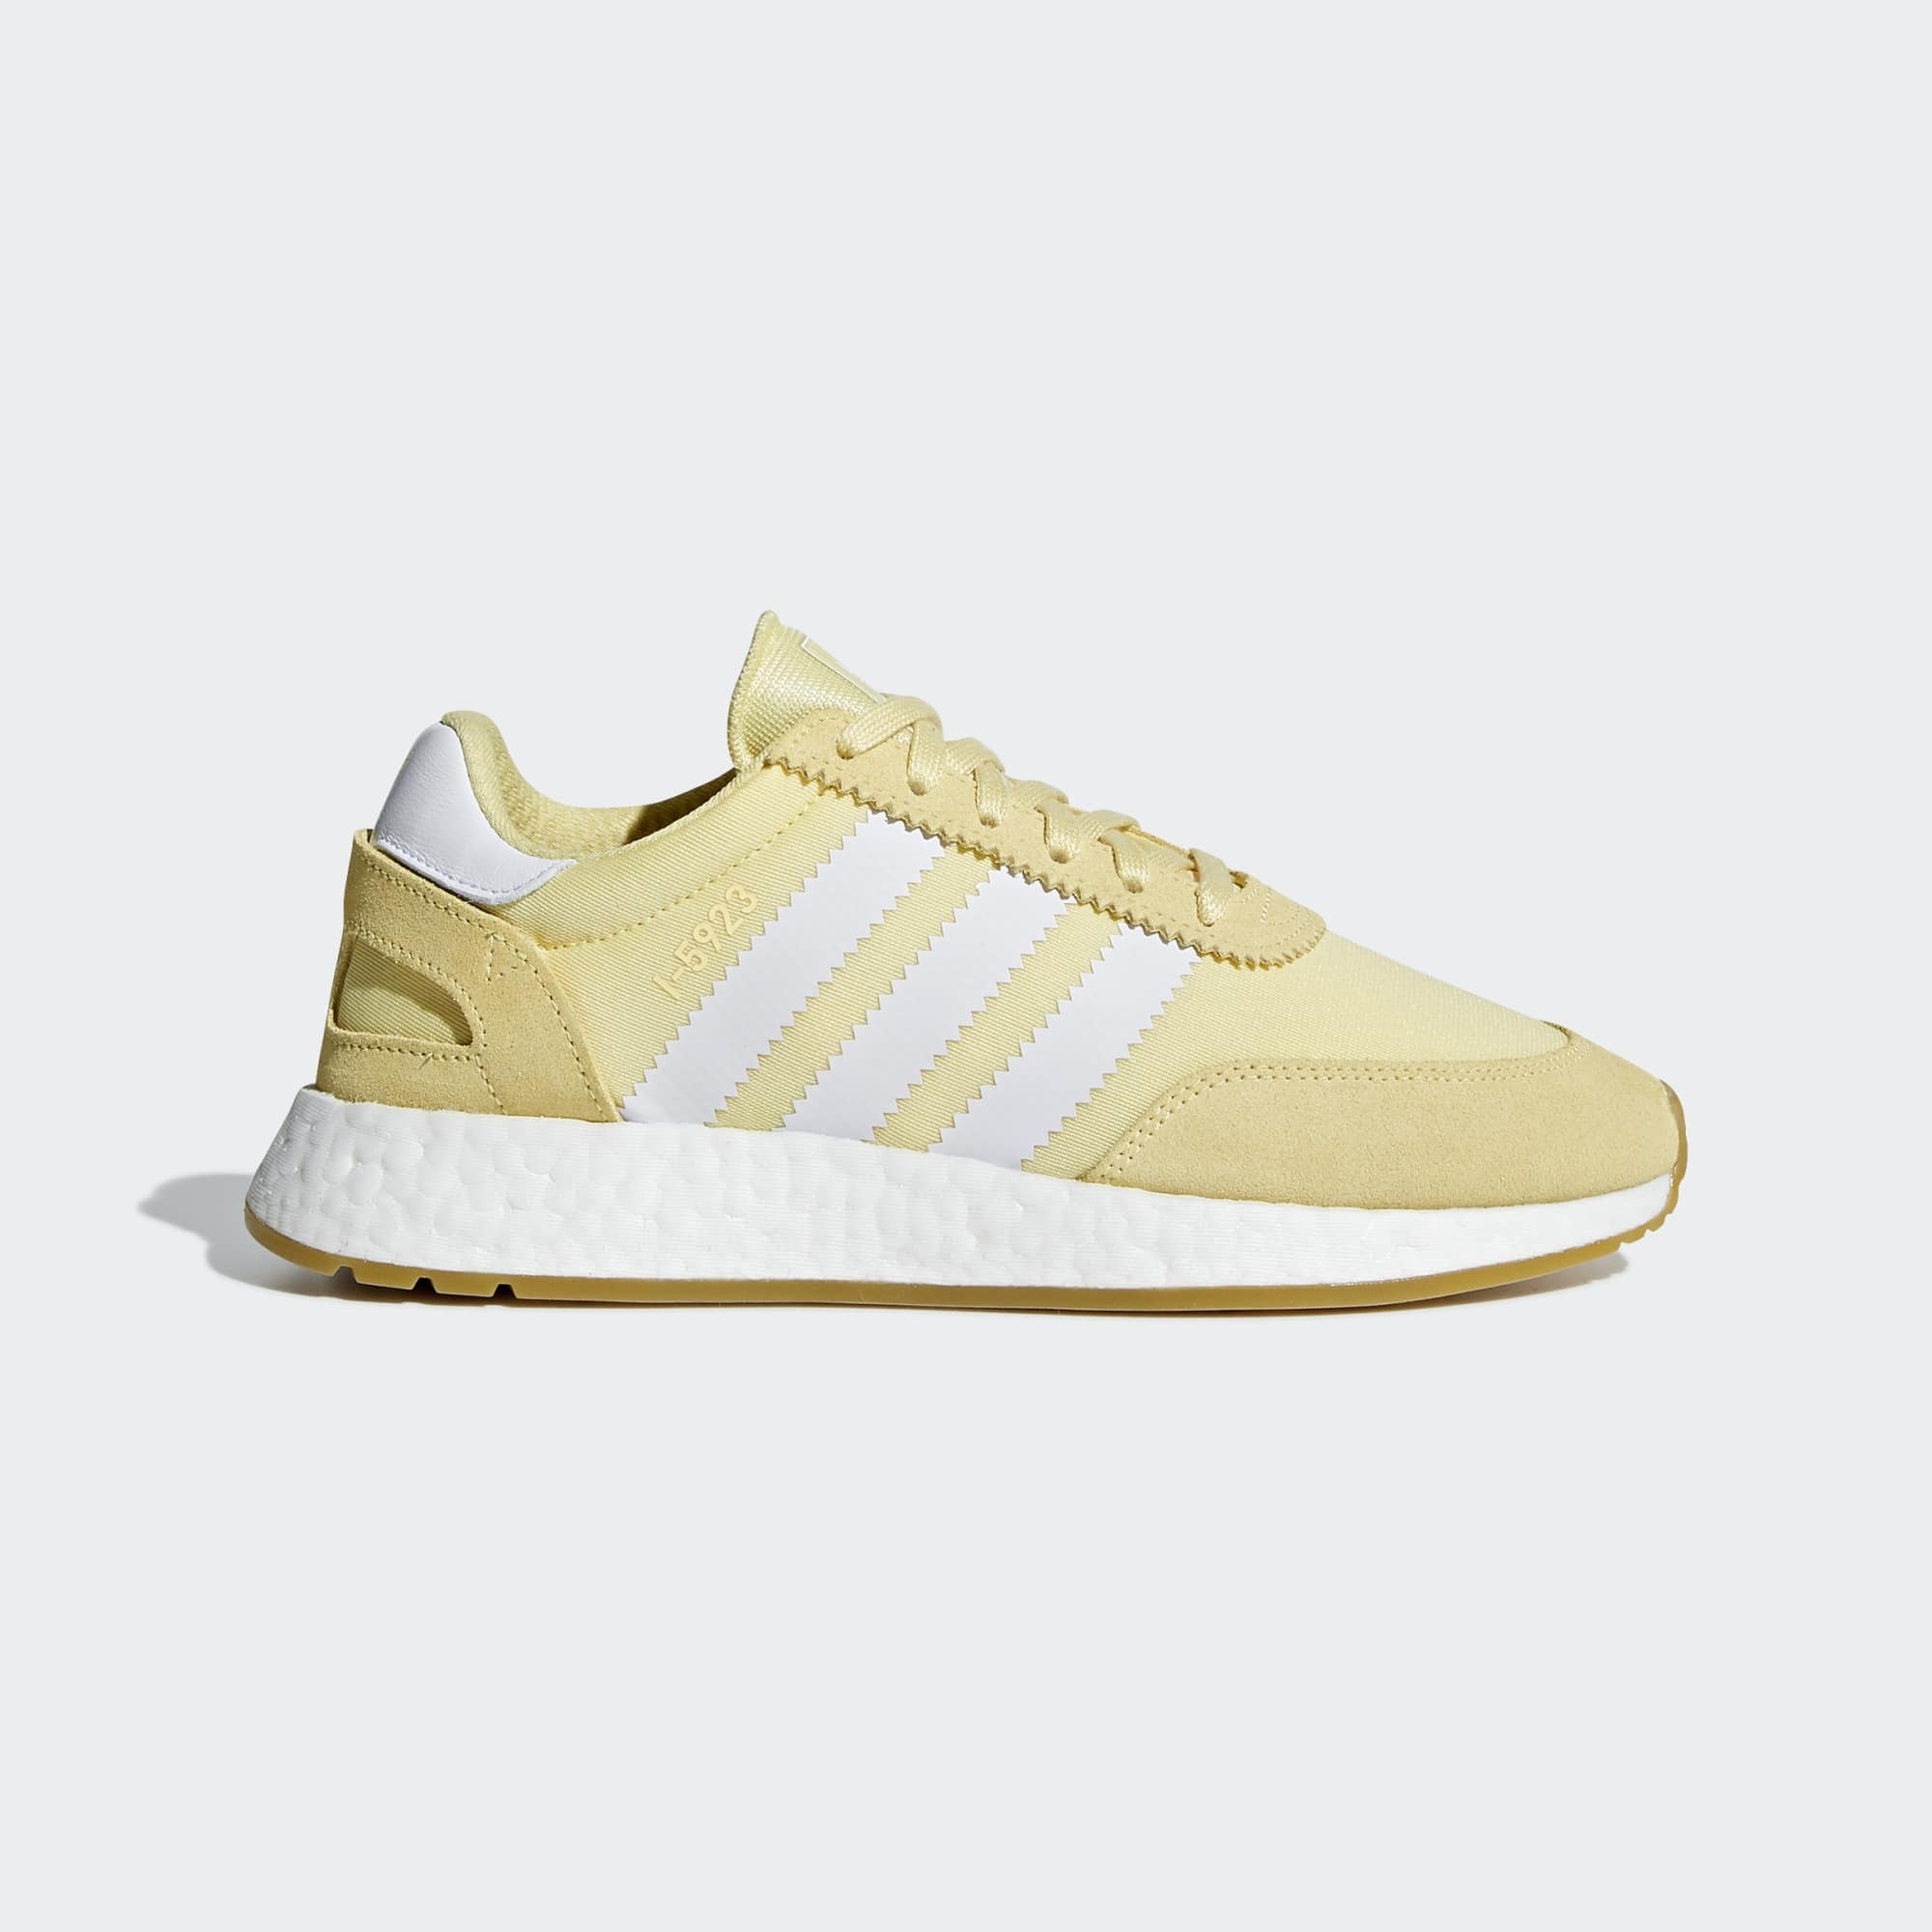 Adidas Originals Iniki I-5923 Runner Boost Women's B37972